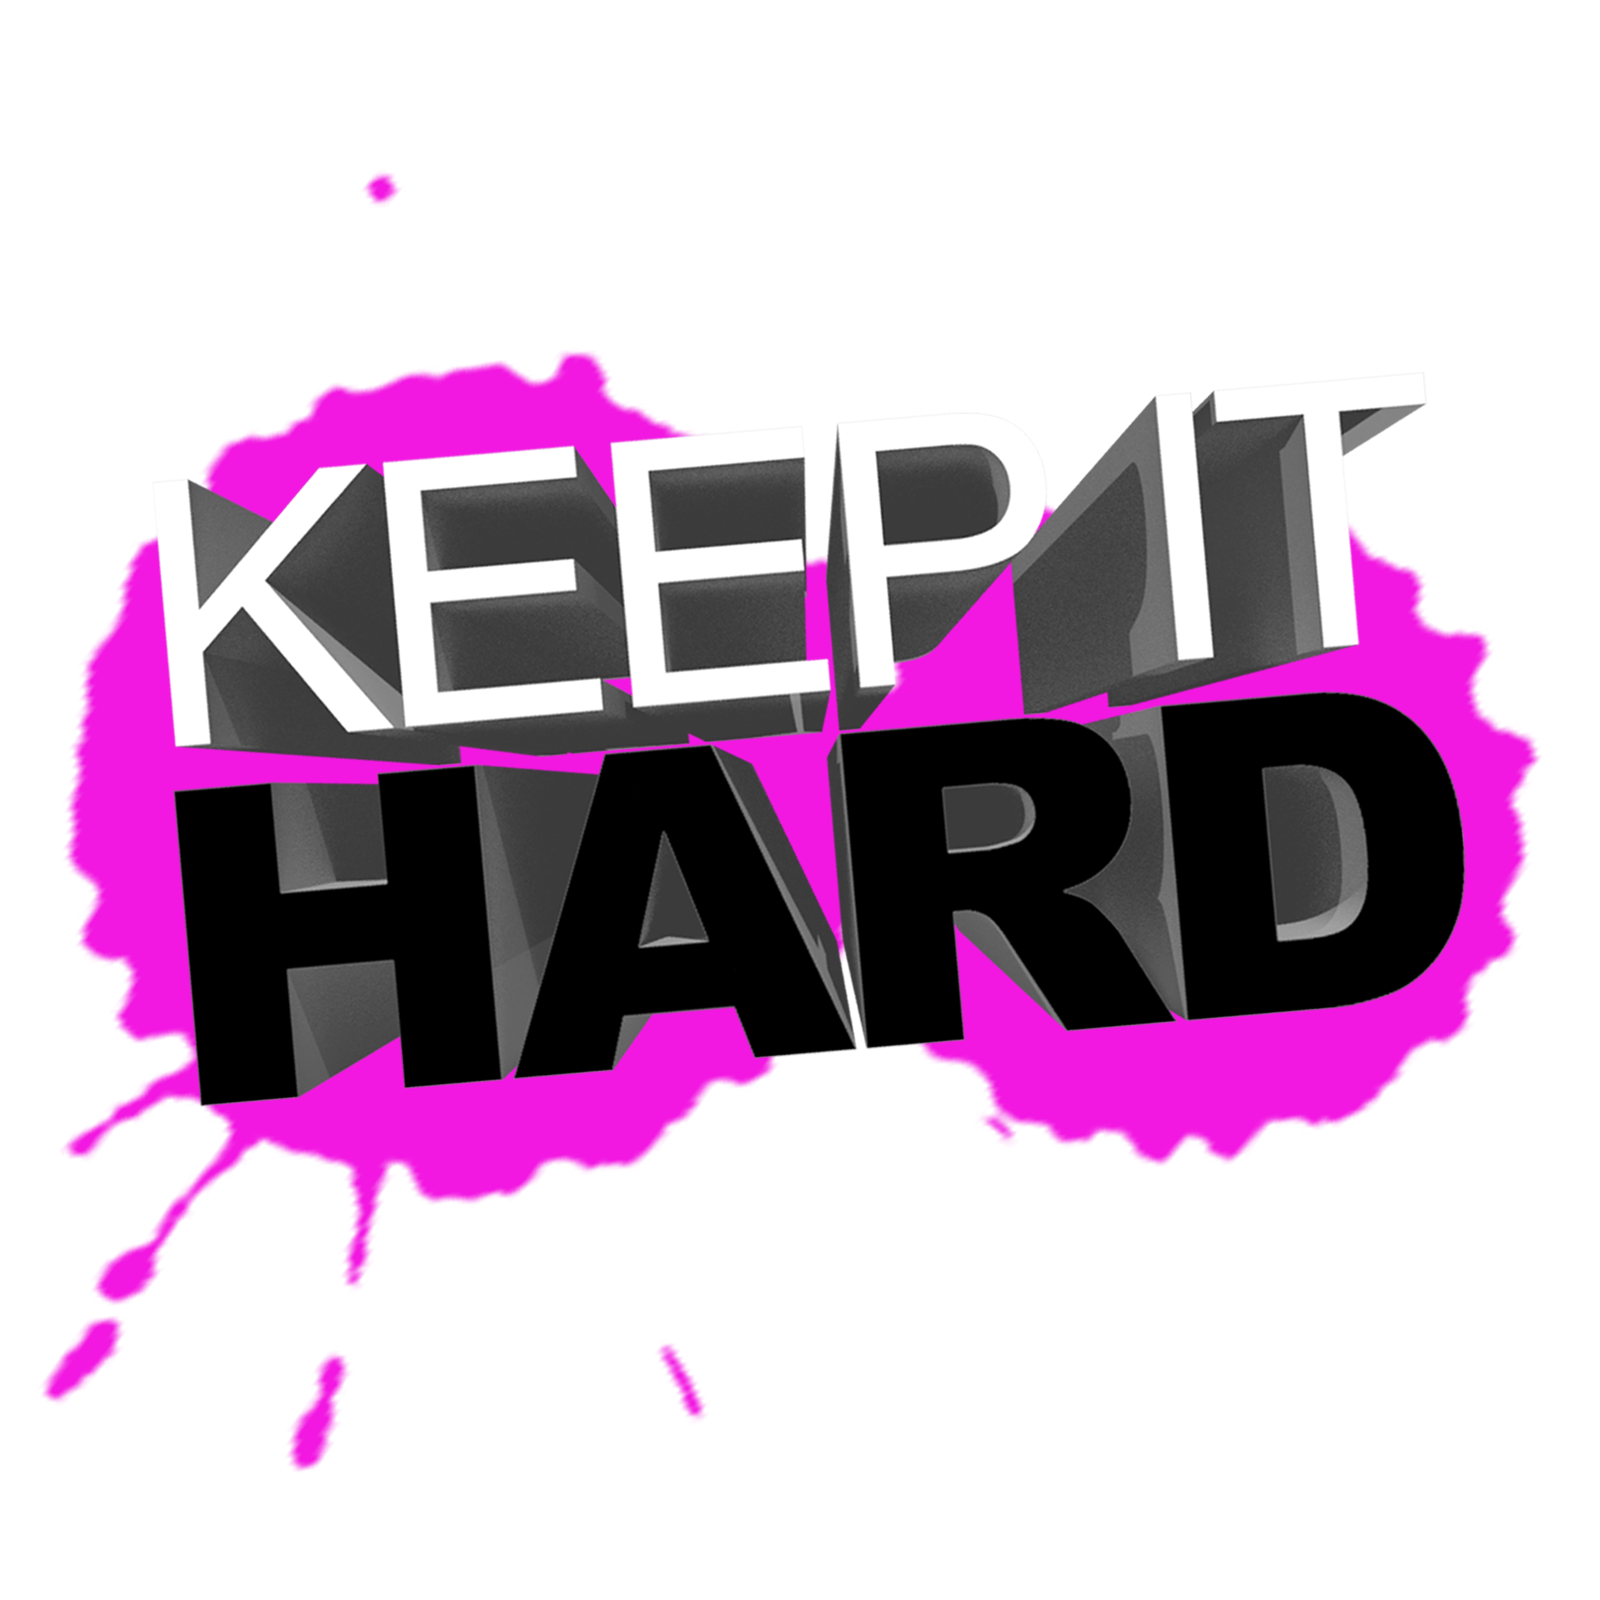 Keep it Hard